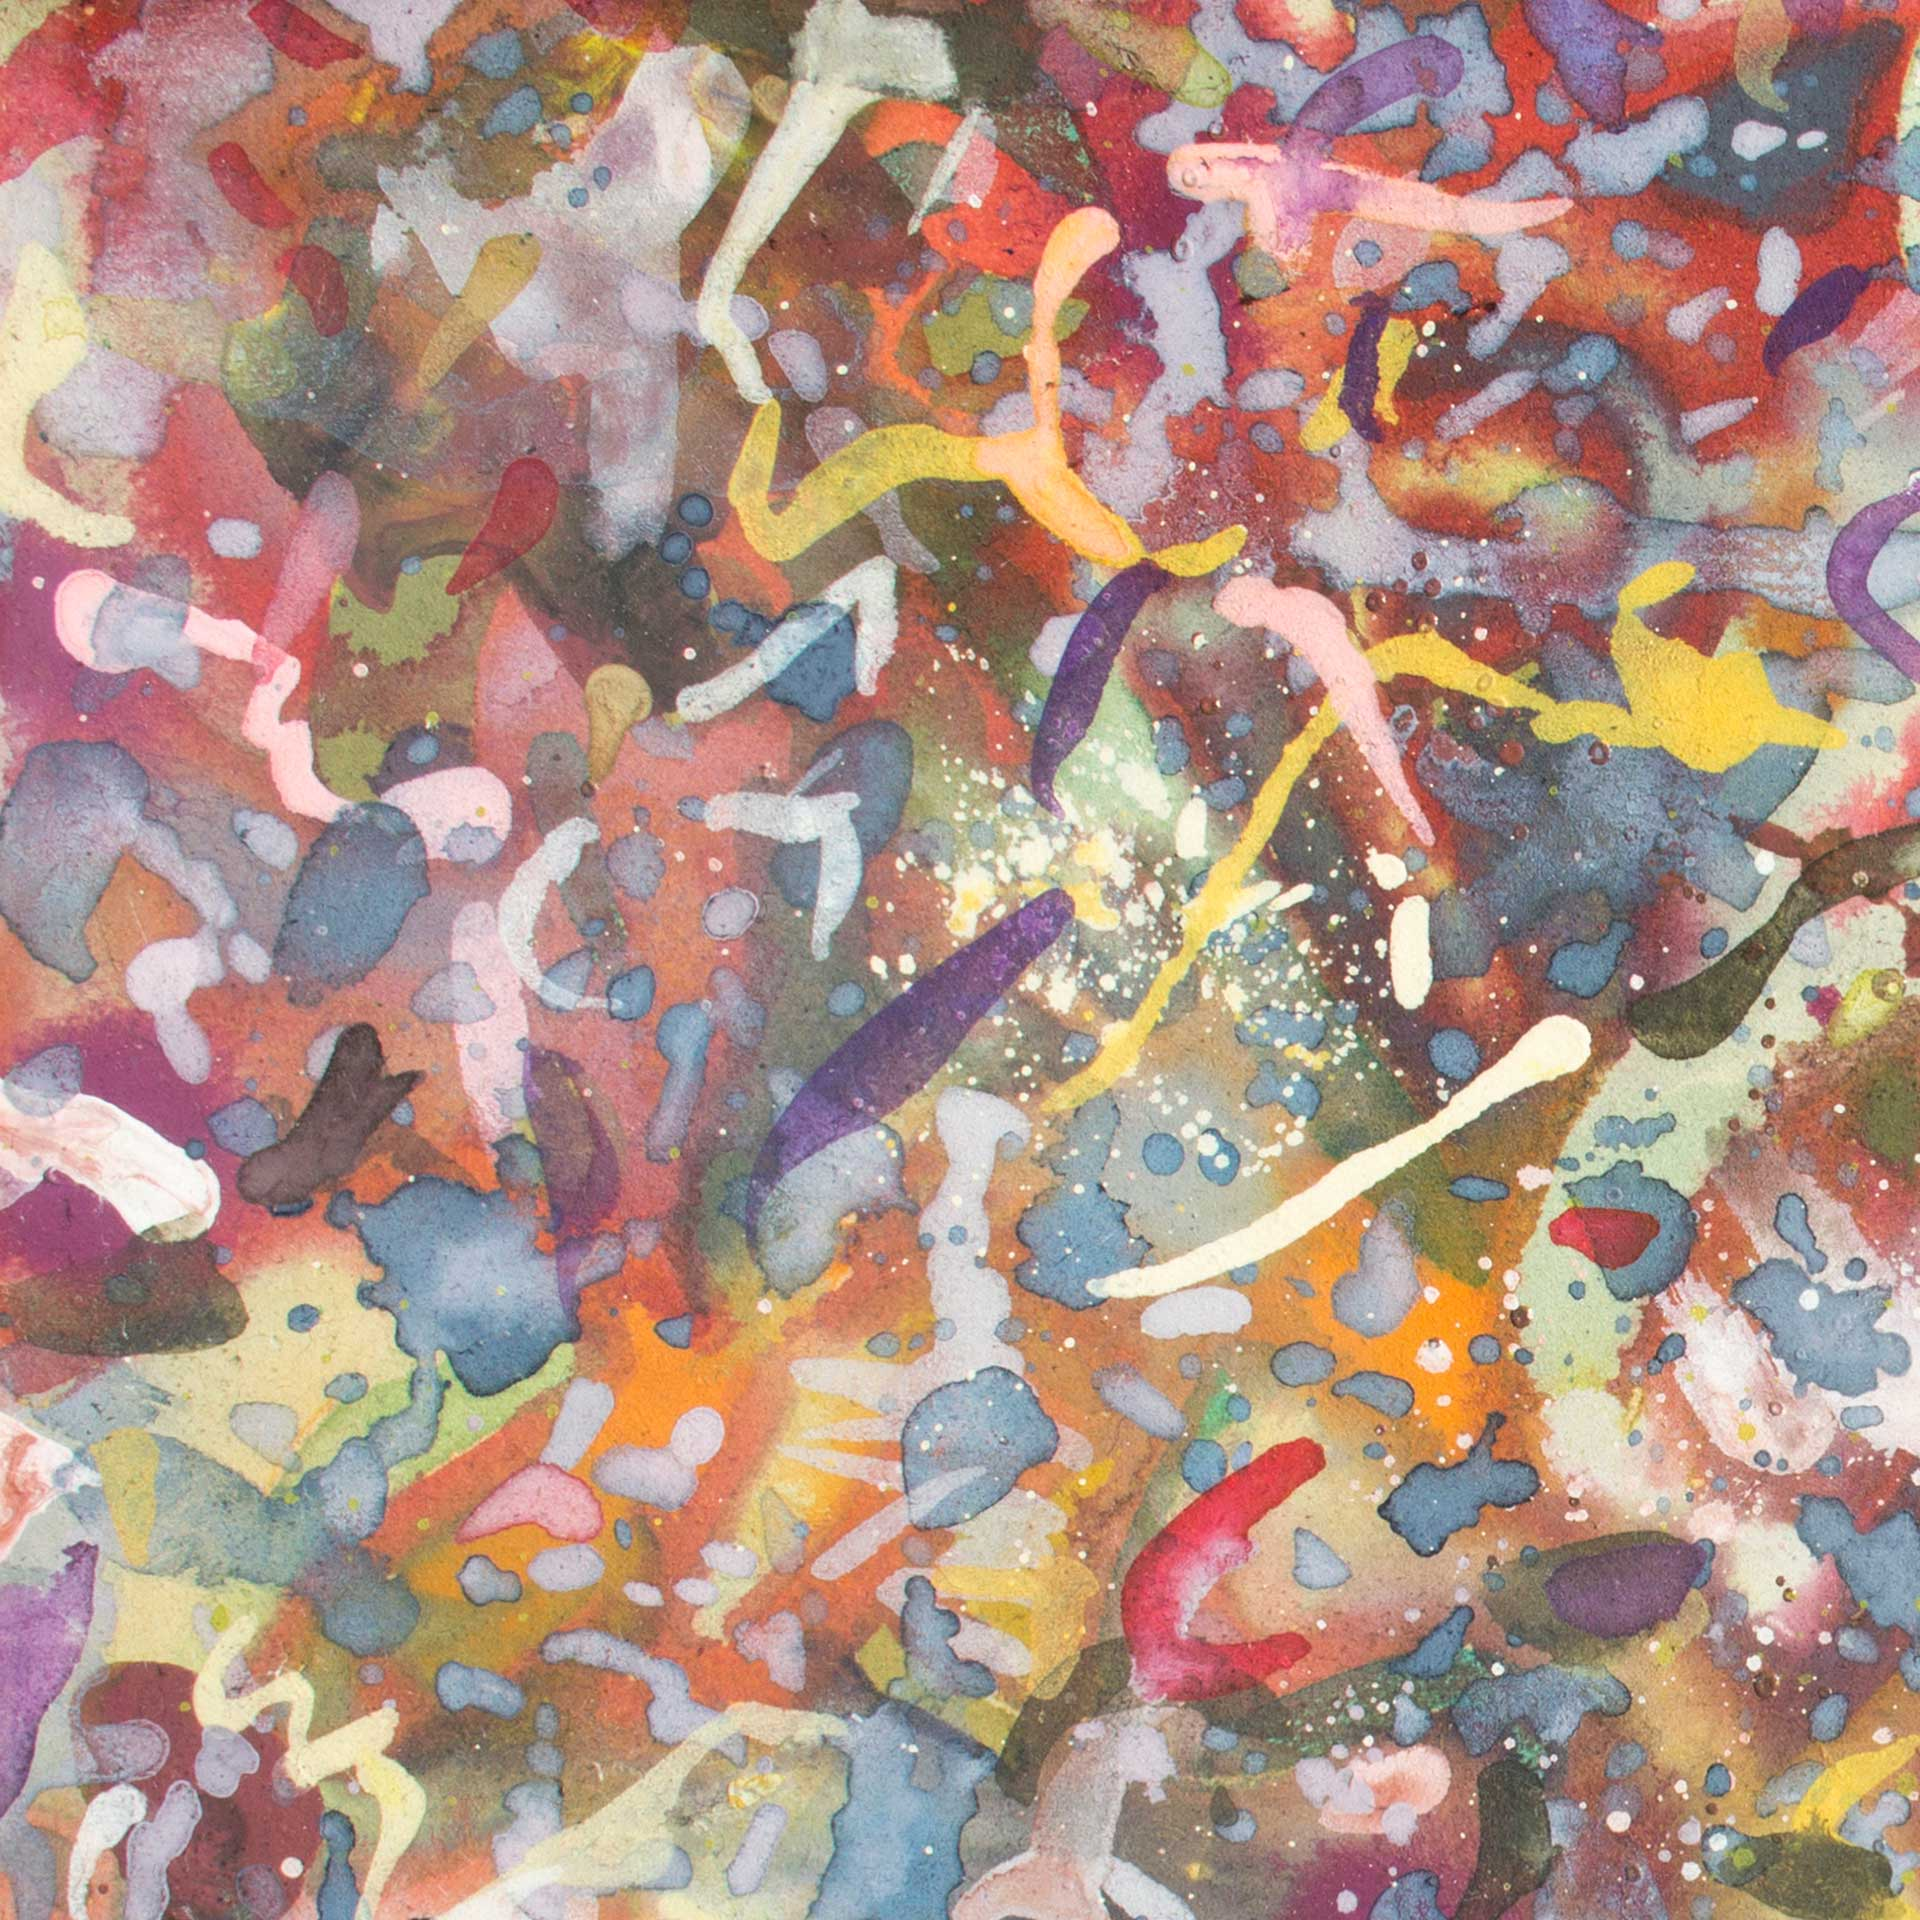 Abstract expressionism painting - Dangerous dancers - Detail 1